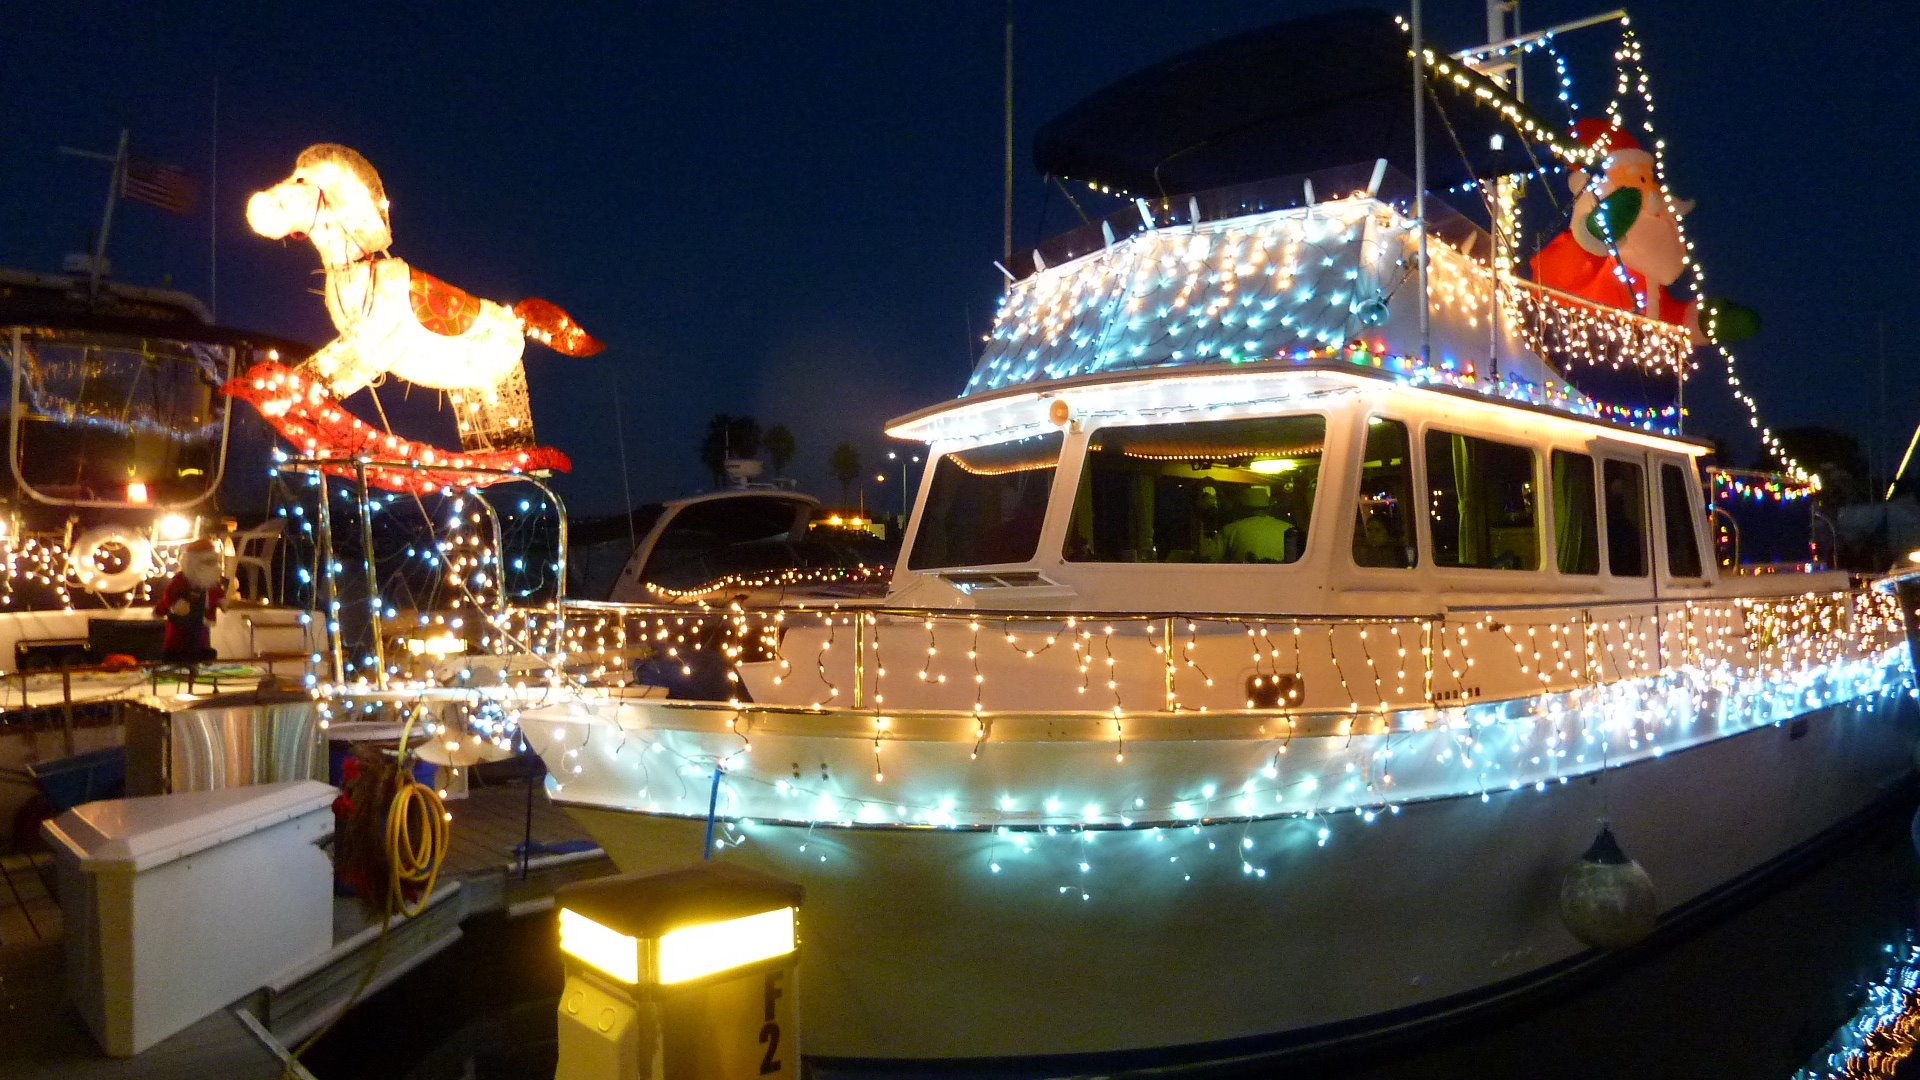 mission bay christmas boat parade of lights - Best Christmas Lights In San Diego